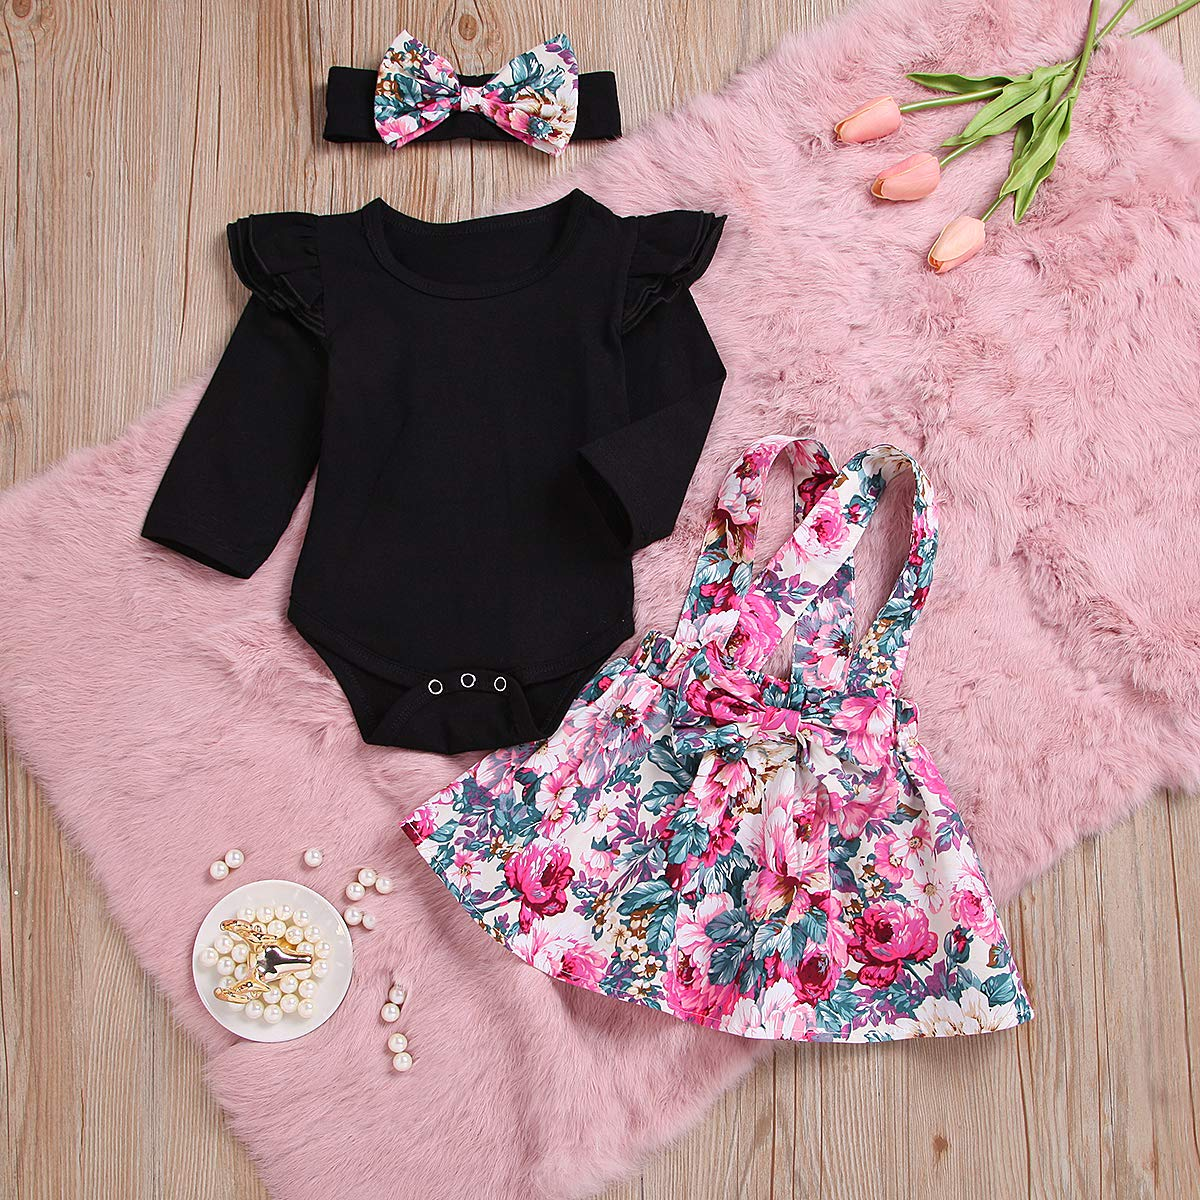 Toddler Infant Baby Girl Ruffle Romper Bodysuit Floral Overall Skirt Set Cotton Outfits